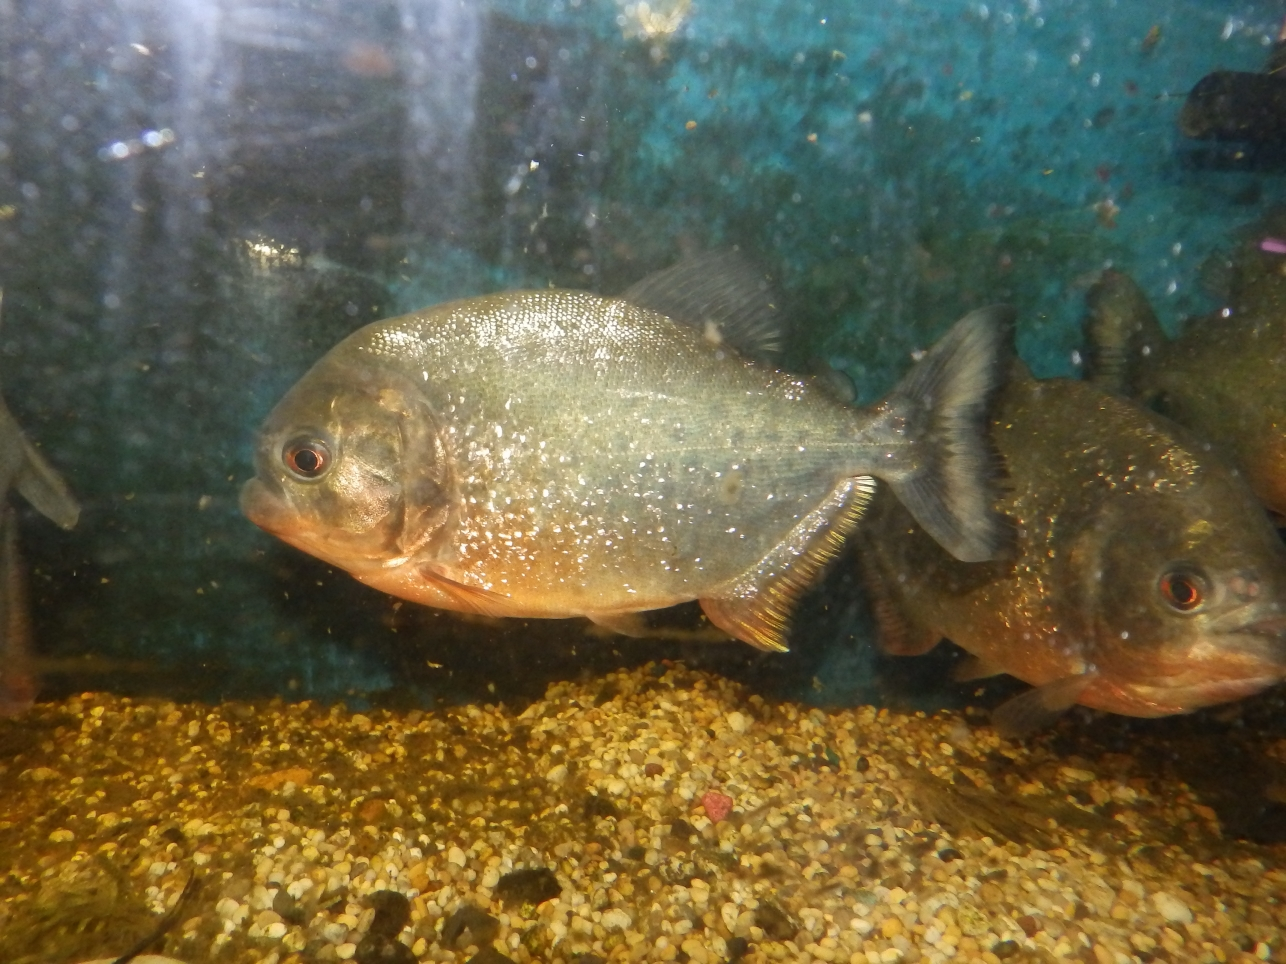 Reptiles amphibians fish red bellied piranha for Pictures of piranha fish